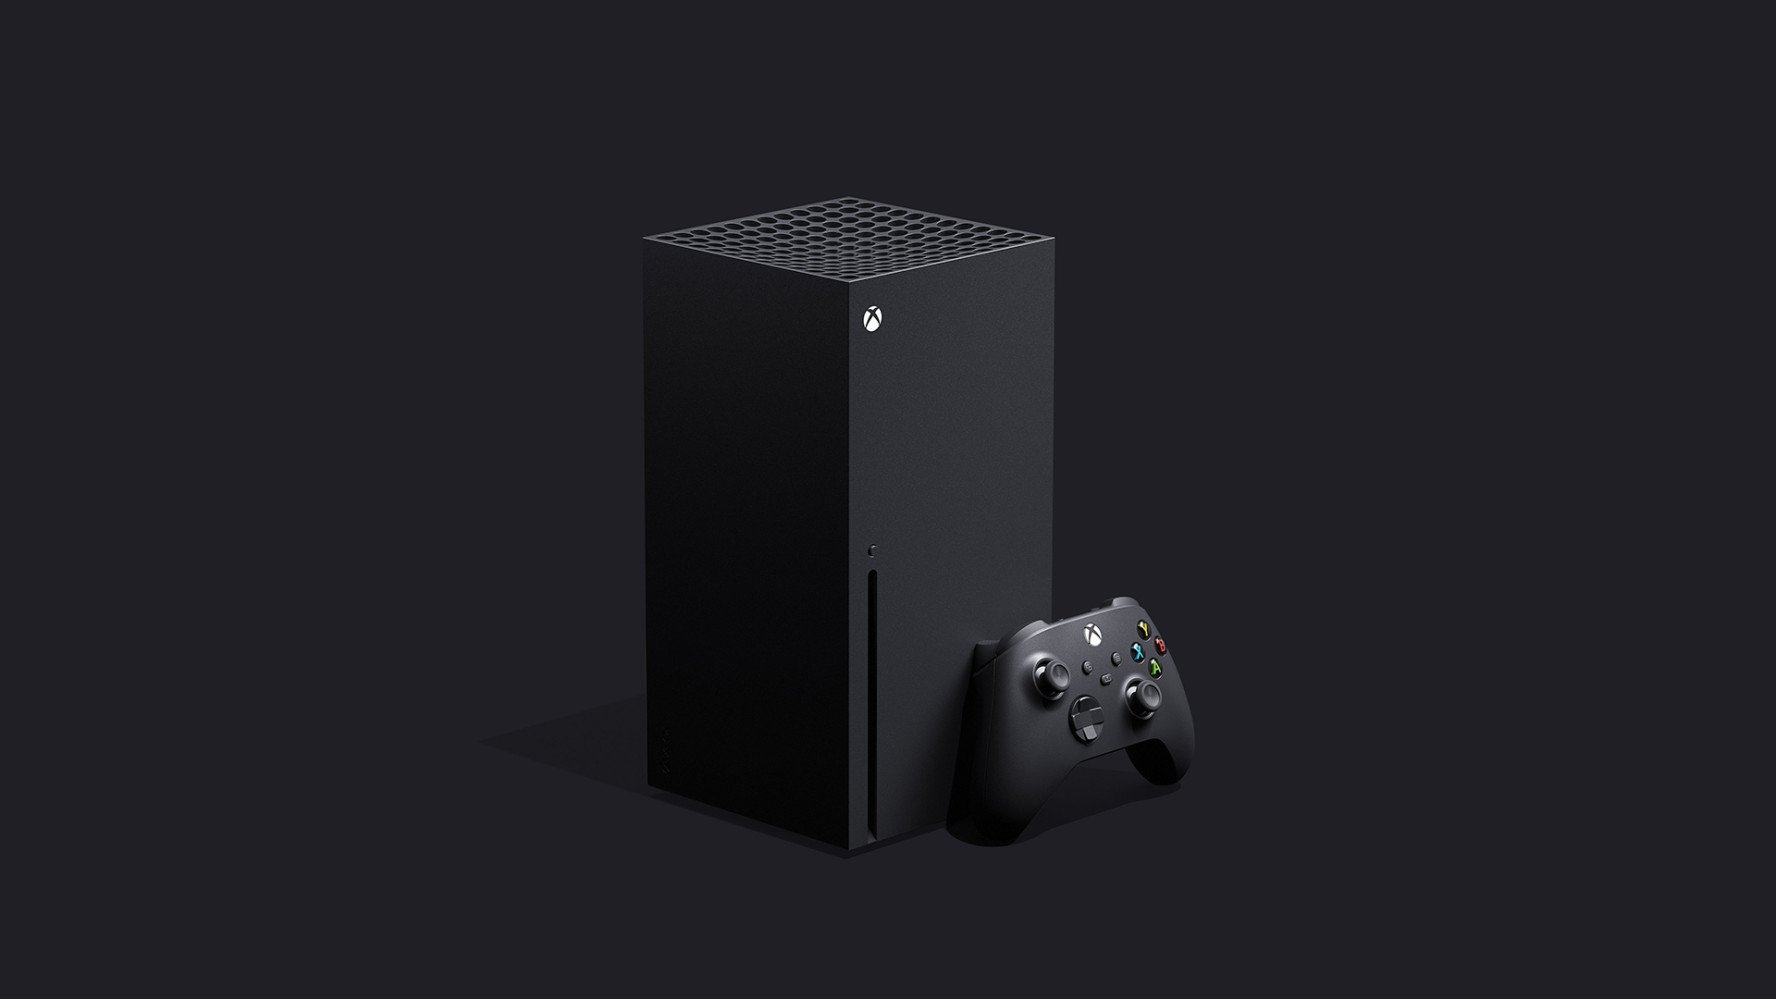 Phil Spencer shares more details on what to expect from the Xbox Series X screenshot